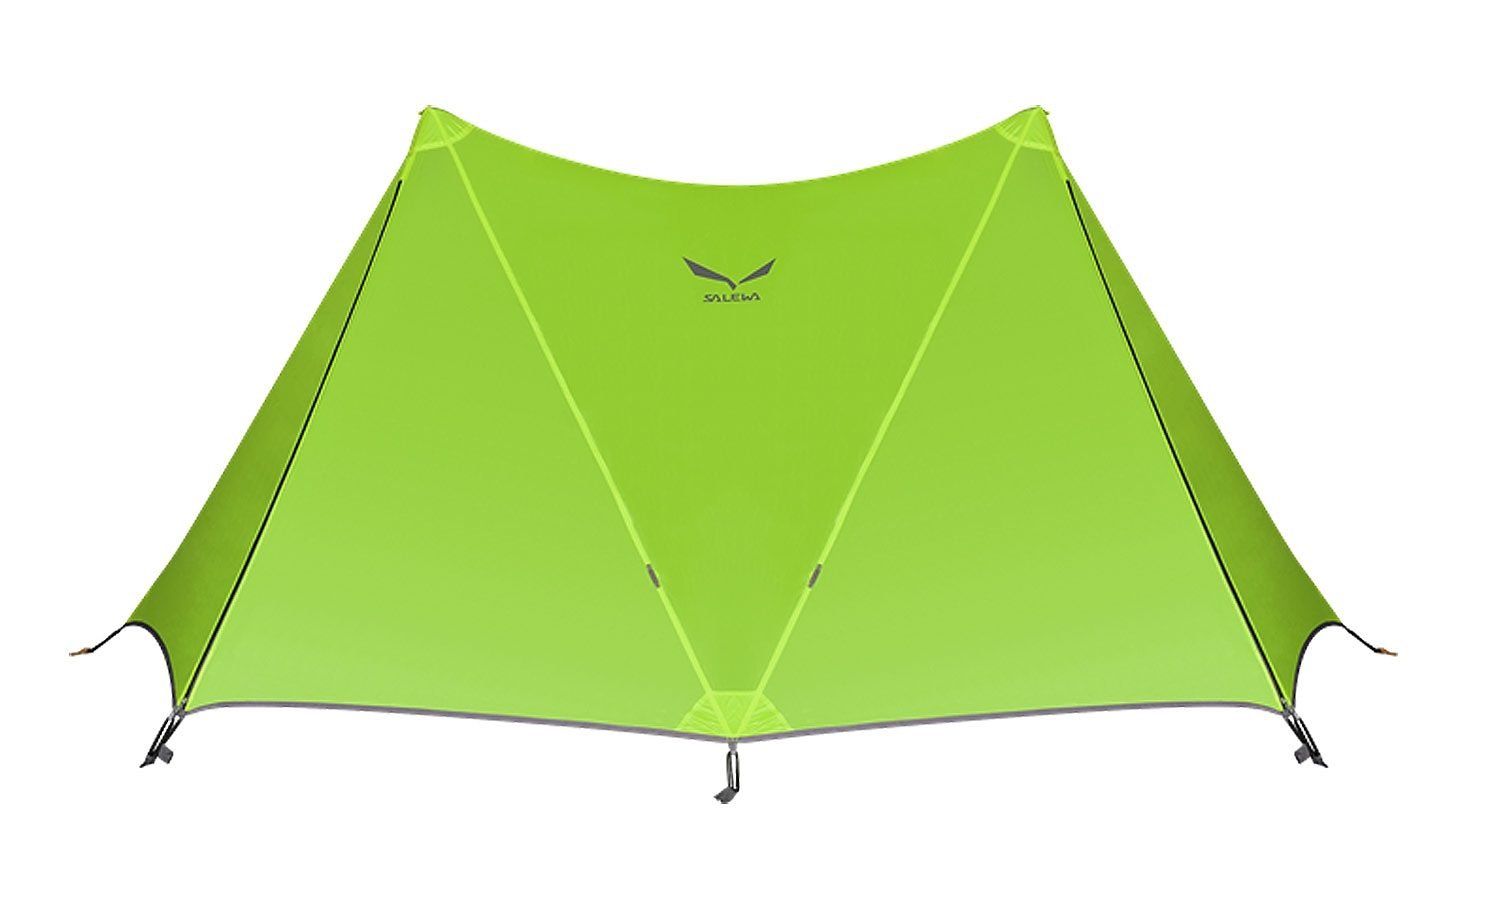 Salewa Zelt »Multi Shelter II Tarp«